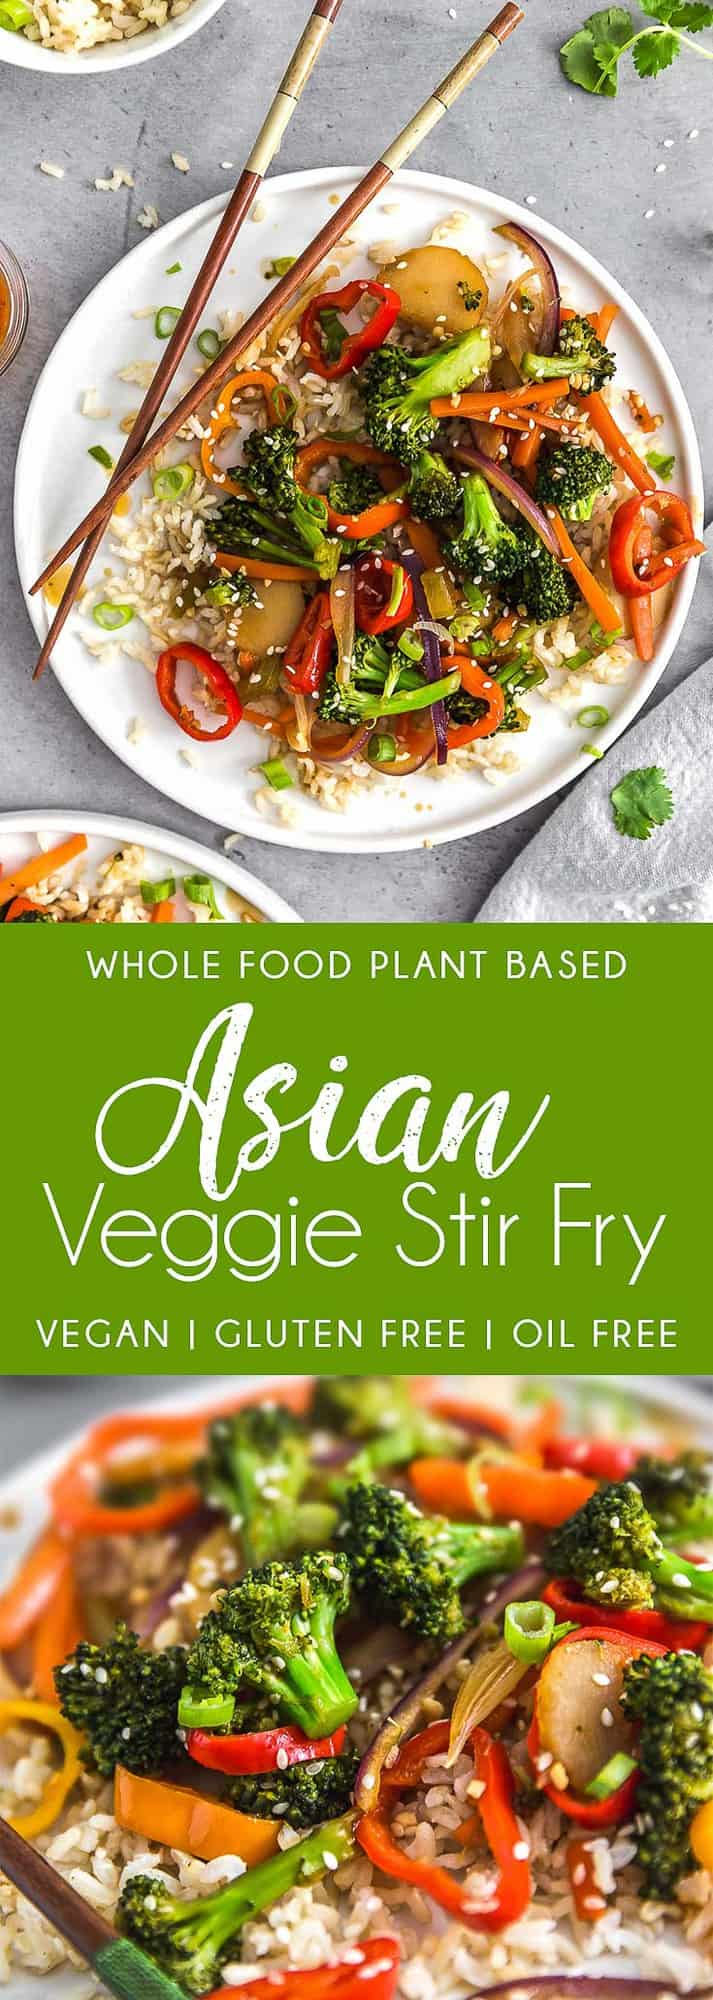 Asian Veggie Stir Fry, plant based, vegan, vegetarian, whole food plant based, gluten free, recipe, wfpb, healthy, healthy vegan, oil free, no refined sugar, no oil, refined sugar free, dairy free, veggies, vegetables, stir fry, dinner, rice